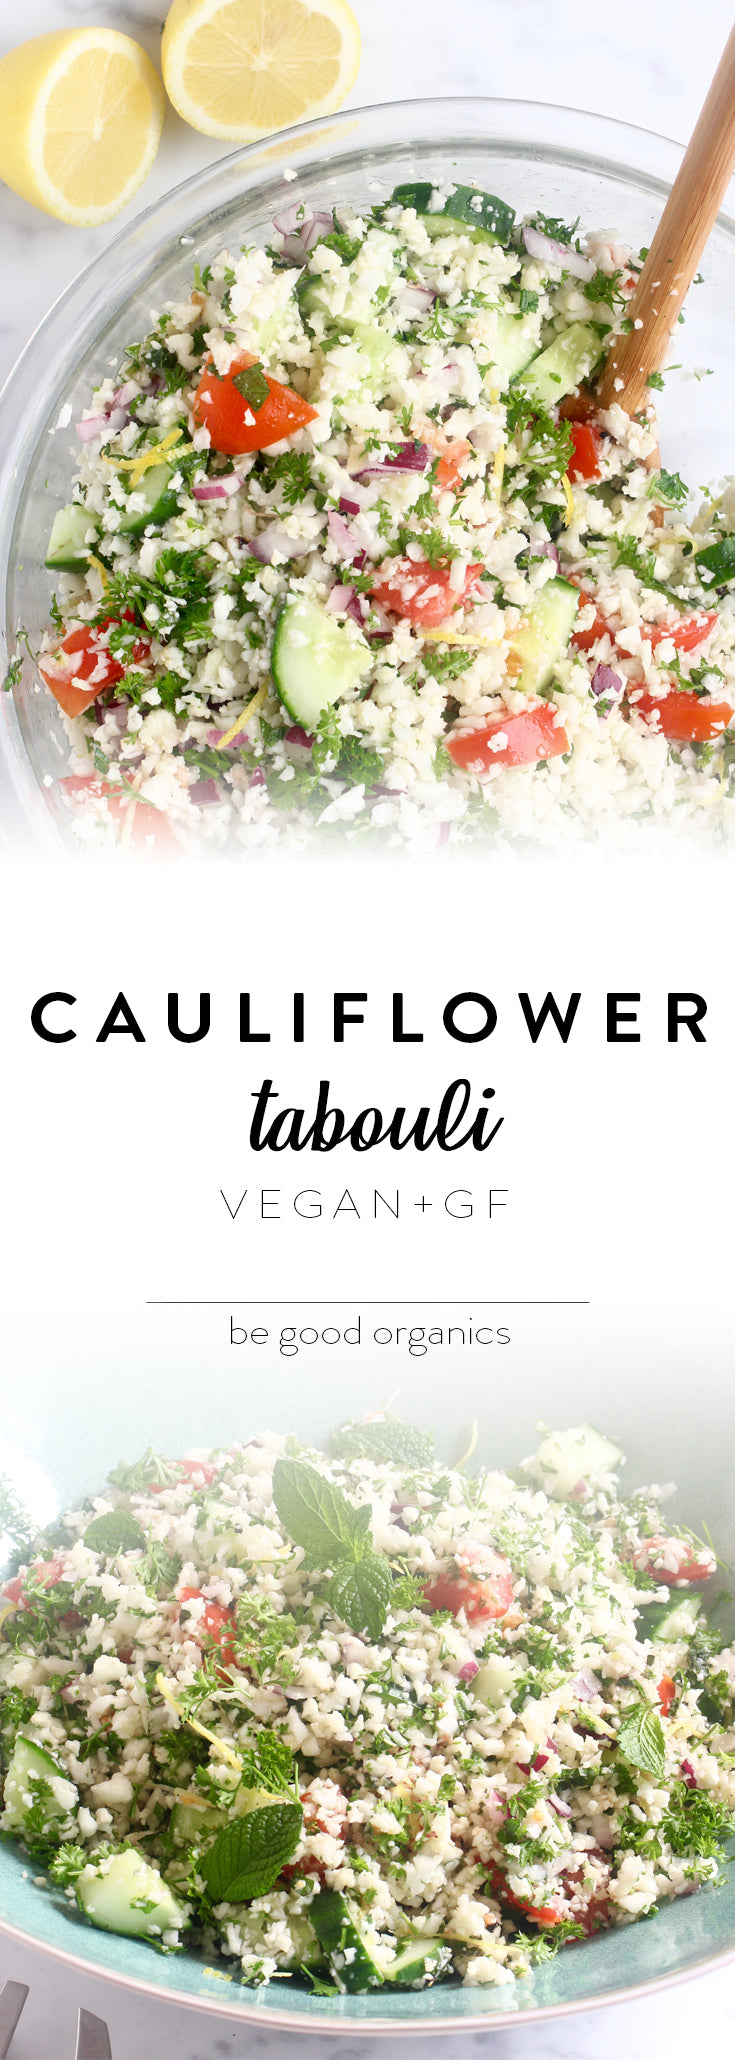 Cauliflower Tabouli - Be Good Organics